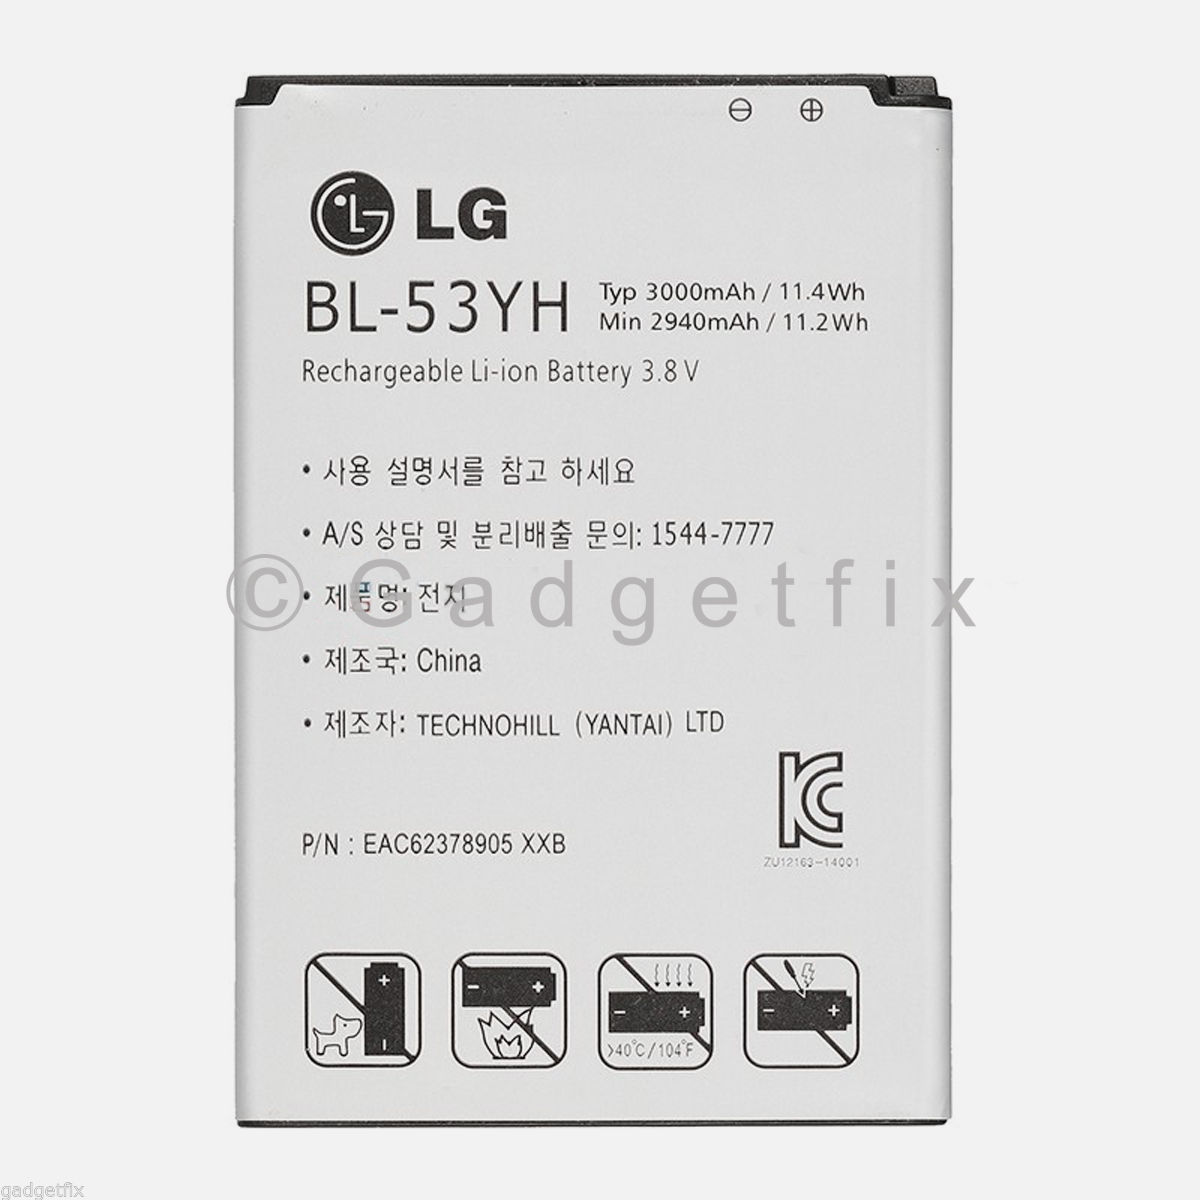 US OEM Original BL-53YH Battery for LG G3 VS985 F400 D850 D855 3000mAh Genuine